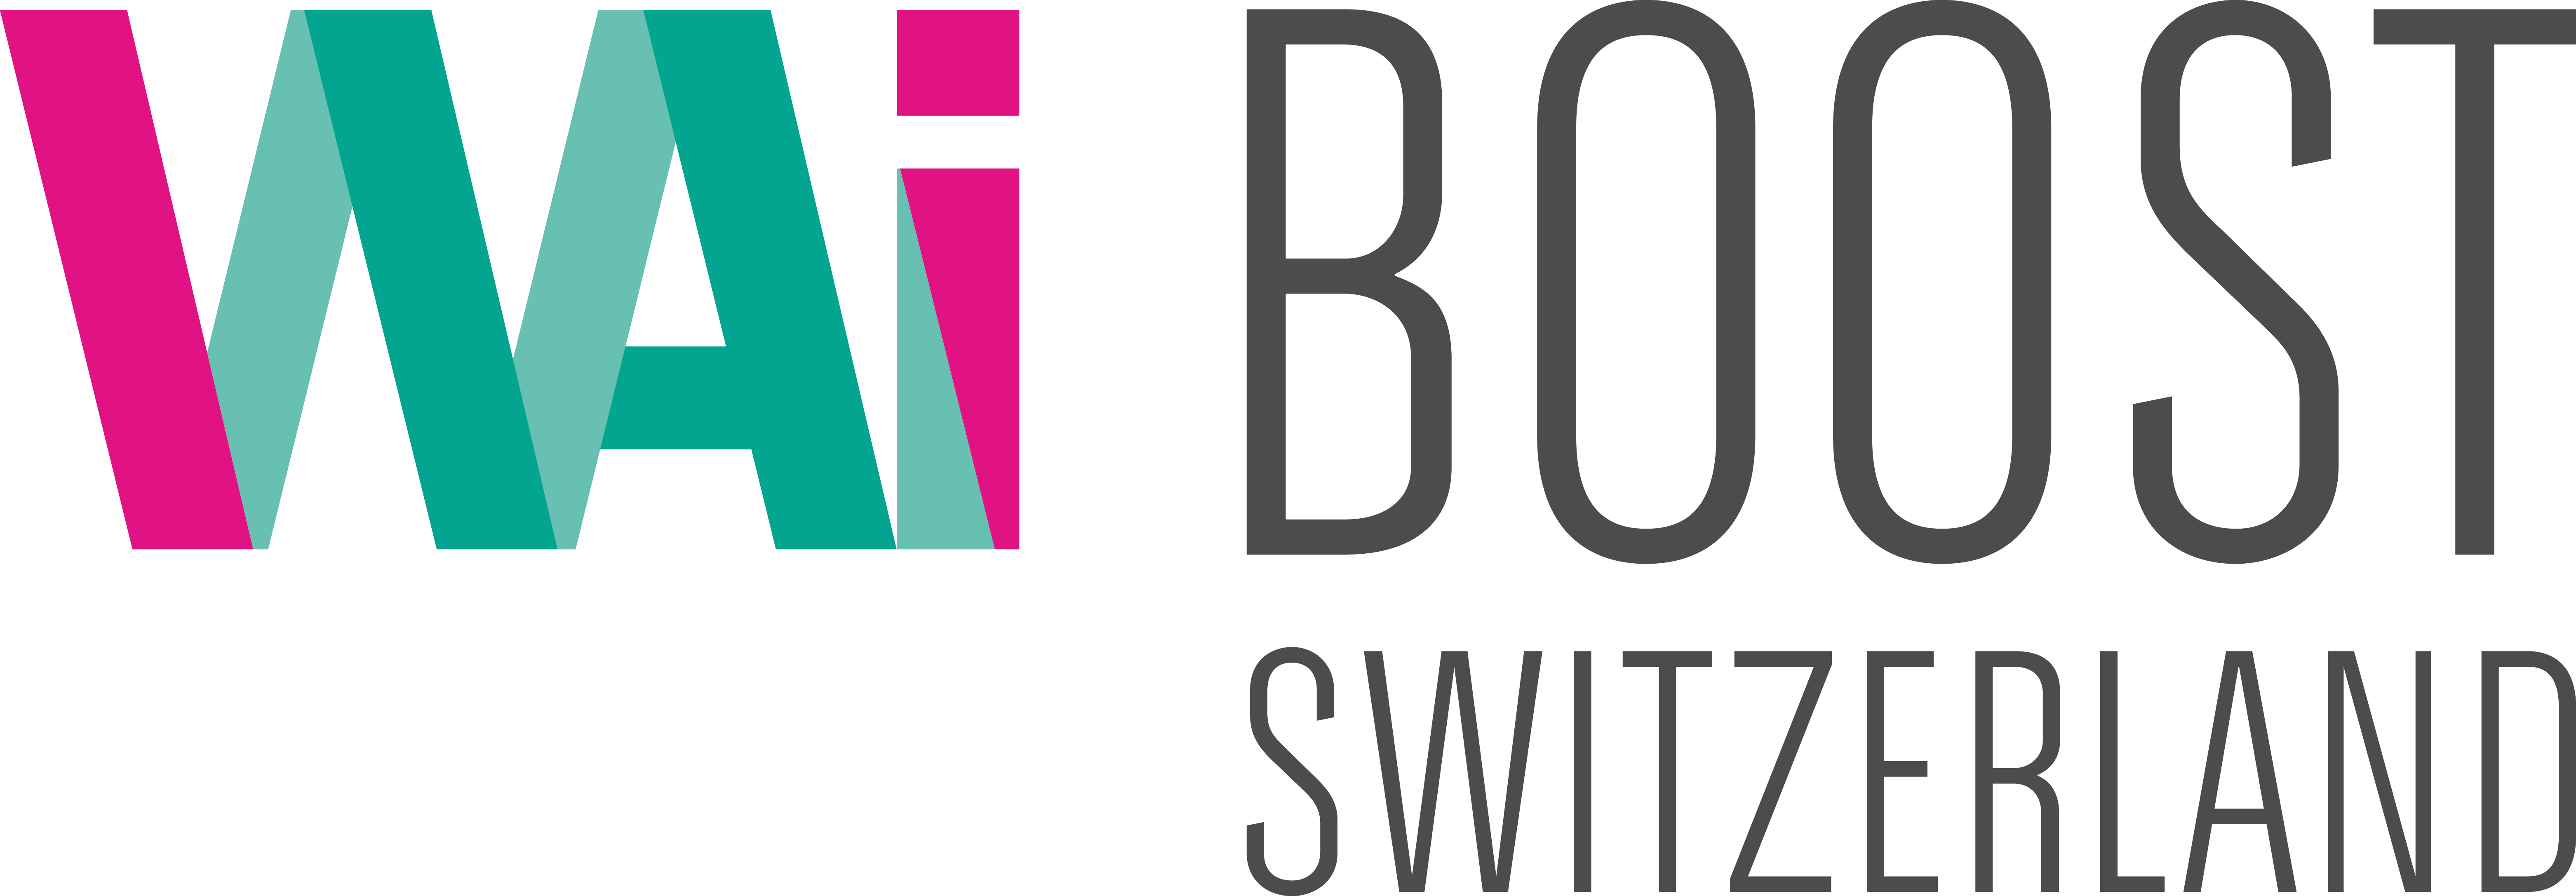 171025_Logo WAI Boost Switzerland_RGB-01